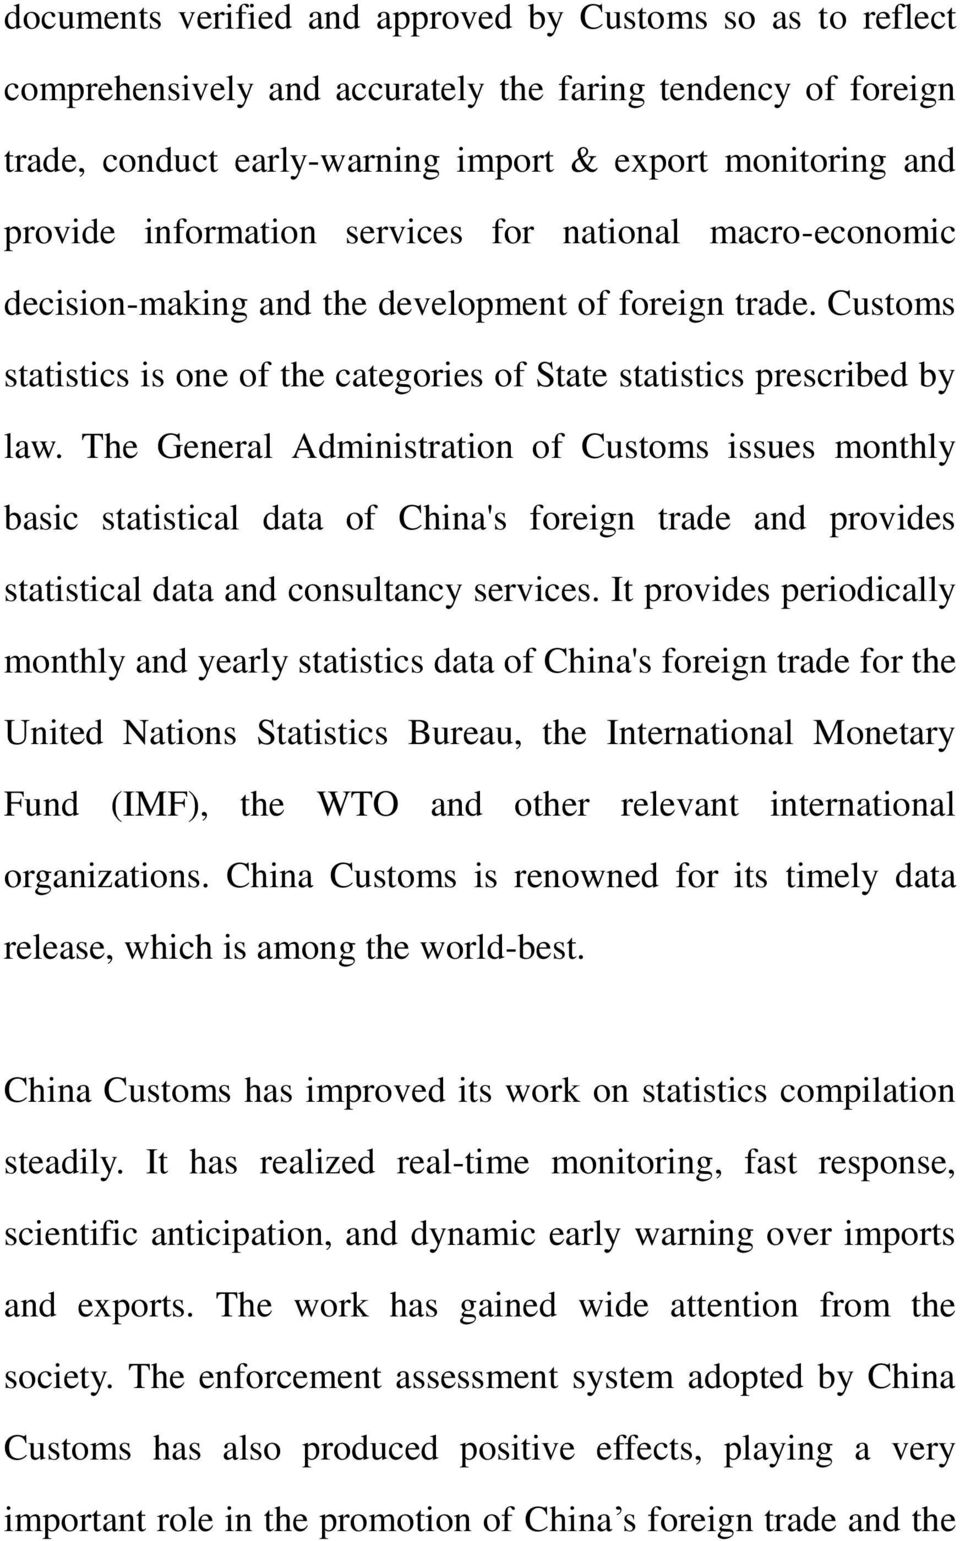 The General Administration of Customs issues monthly basic statistical data of China's foreign trade and provides statistical data and consultancy services.